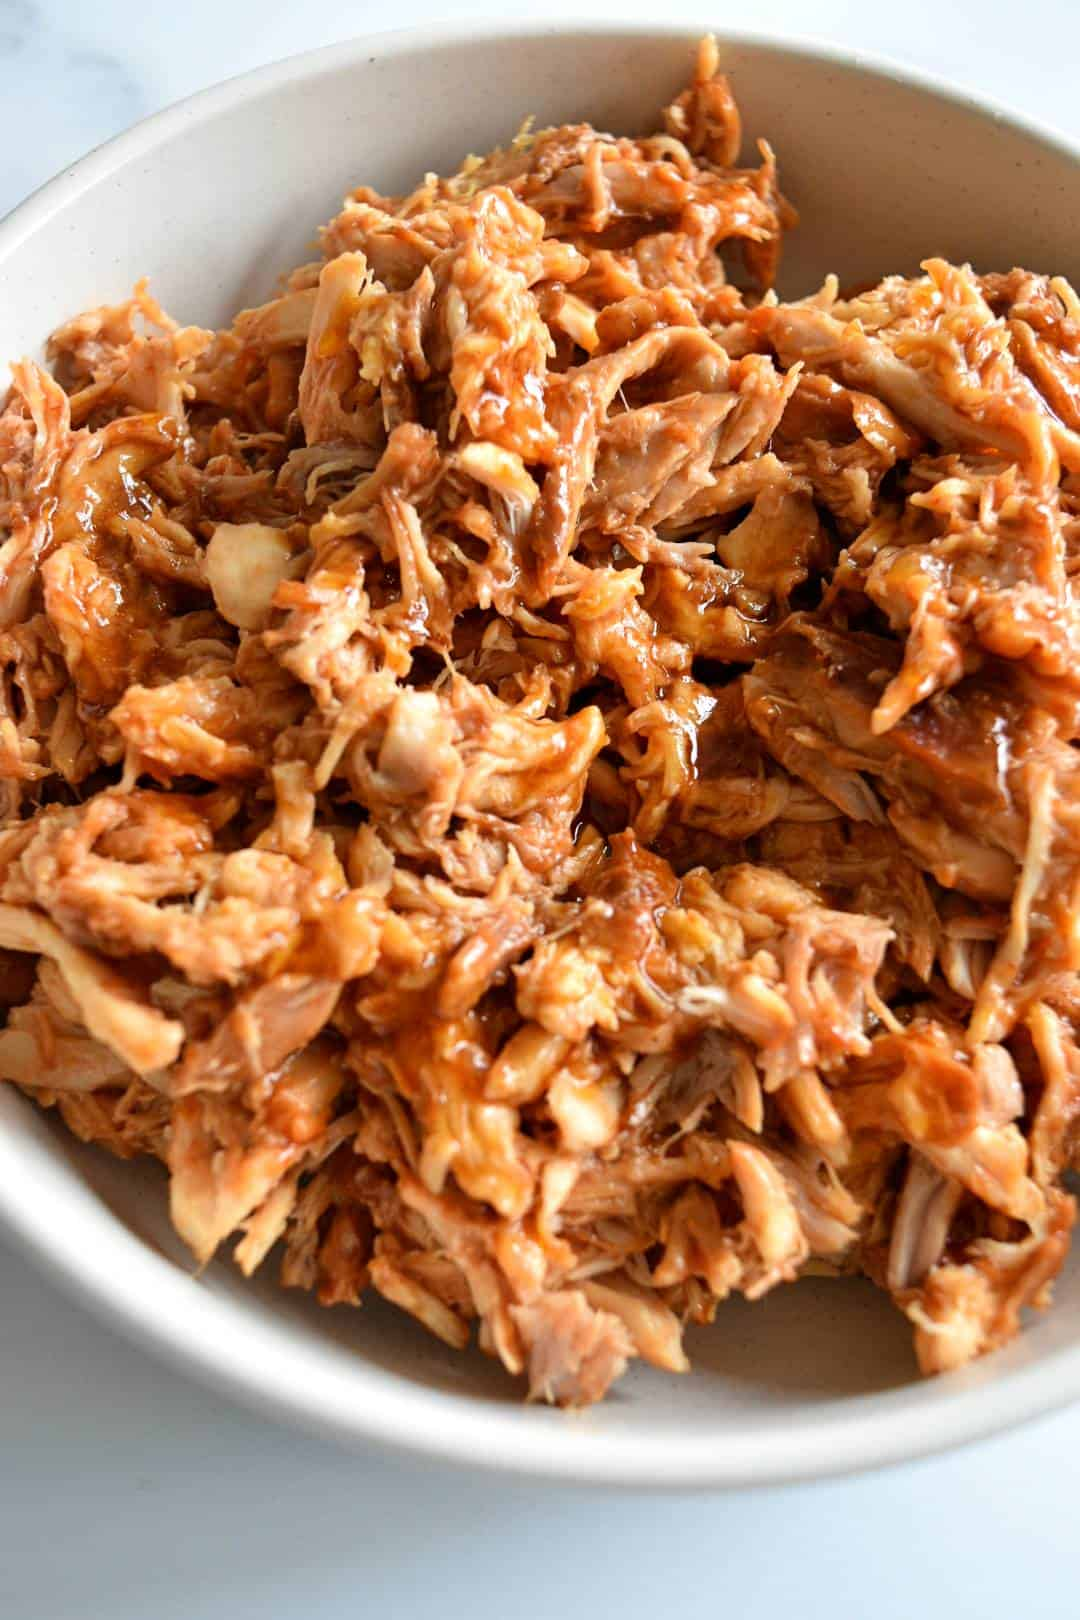 Pulled BBQ chicken in a bowl.